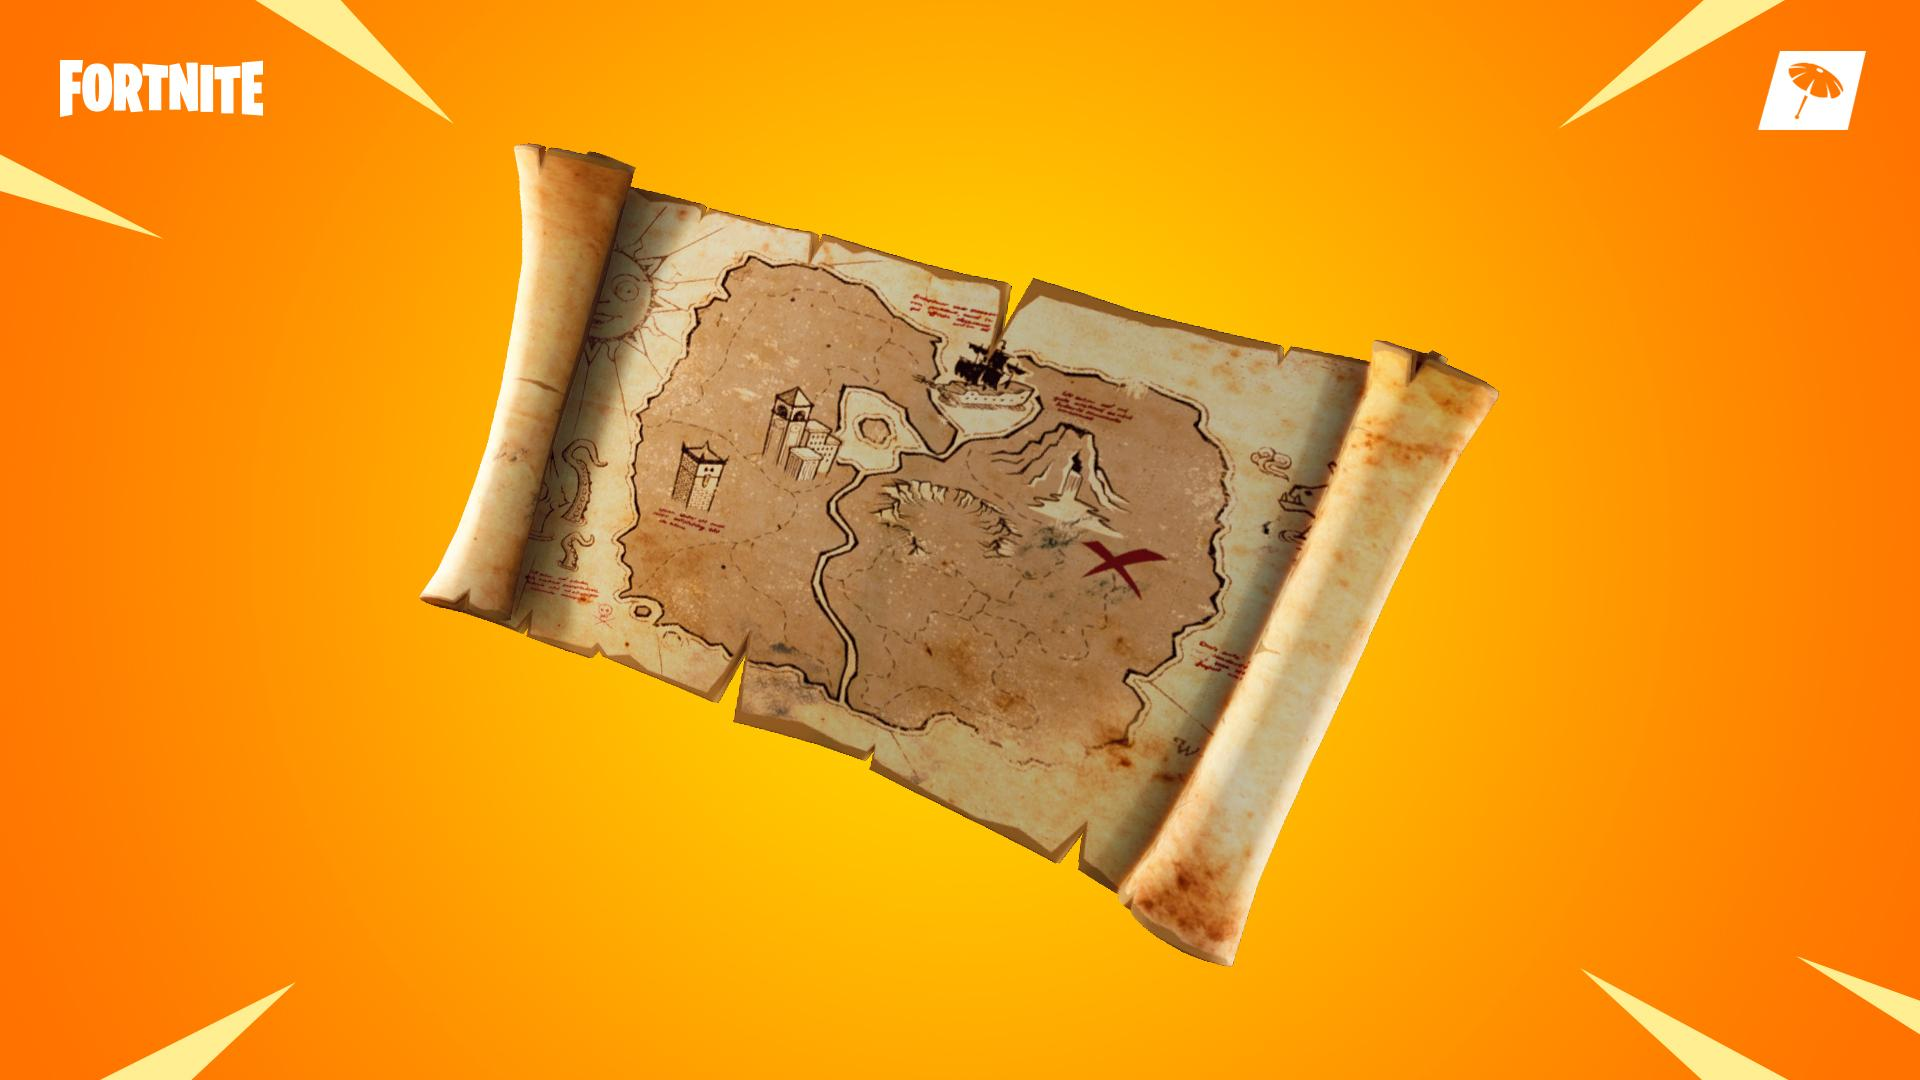 Fortnite's new item sends players on a Buried Treasure hunt